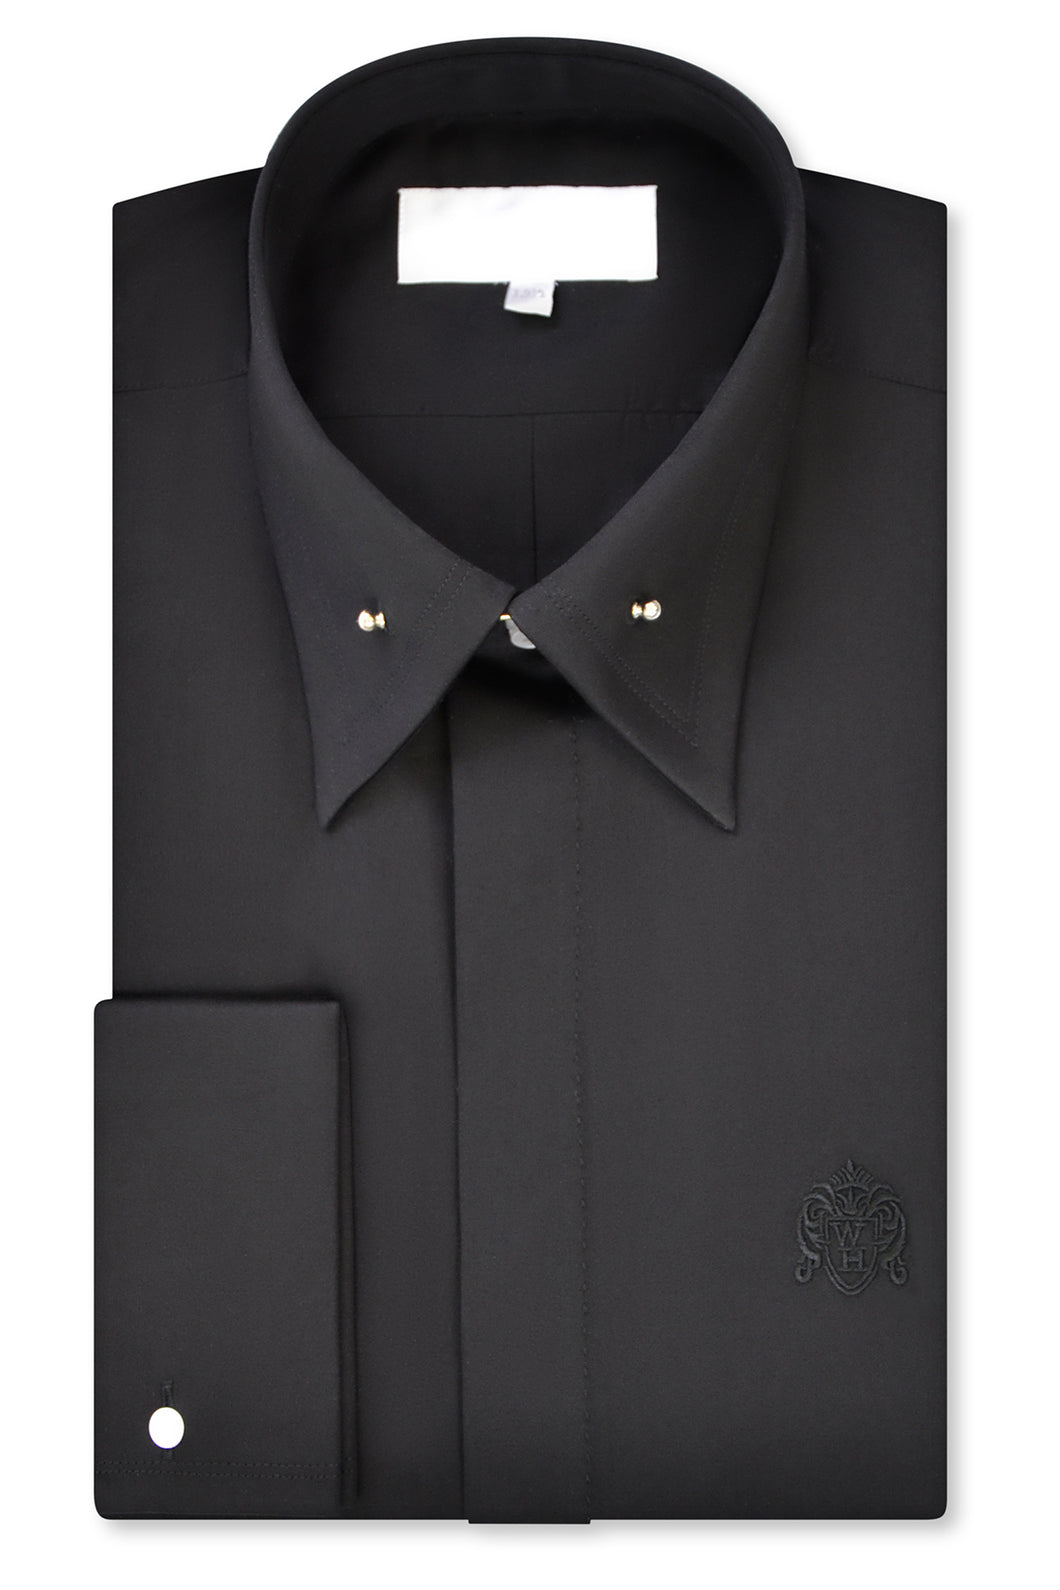 Black Point Pin Collar Shirt with Matching Tie